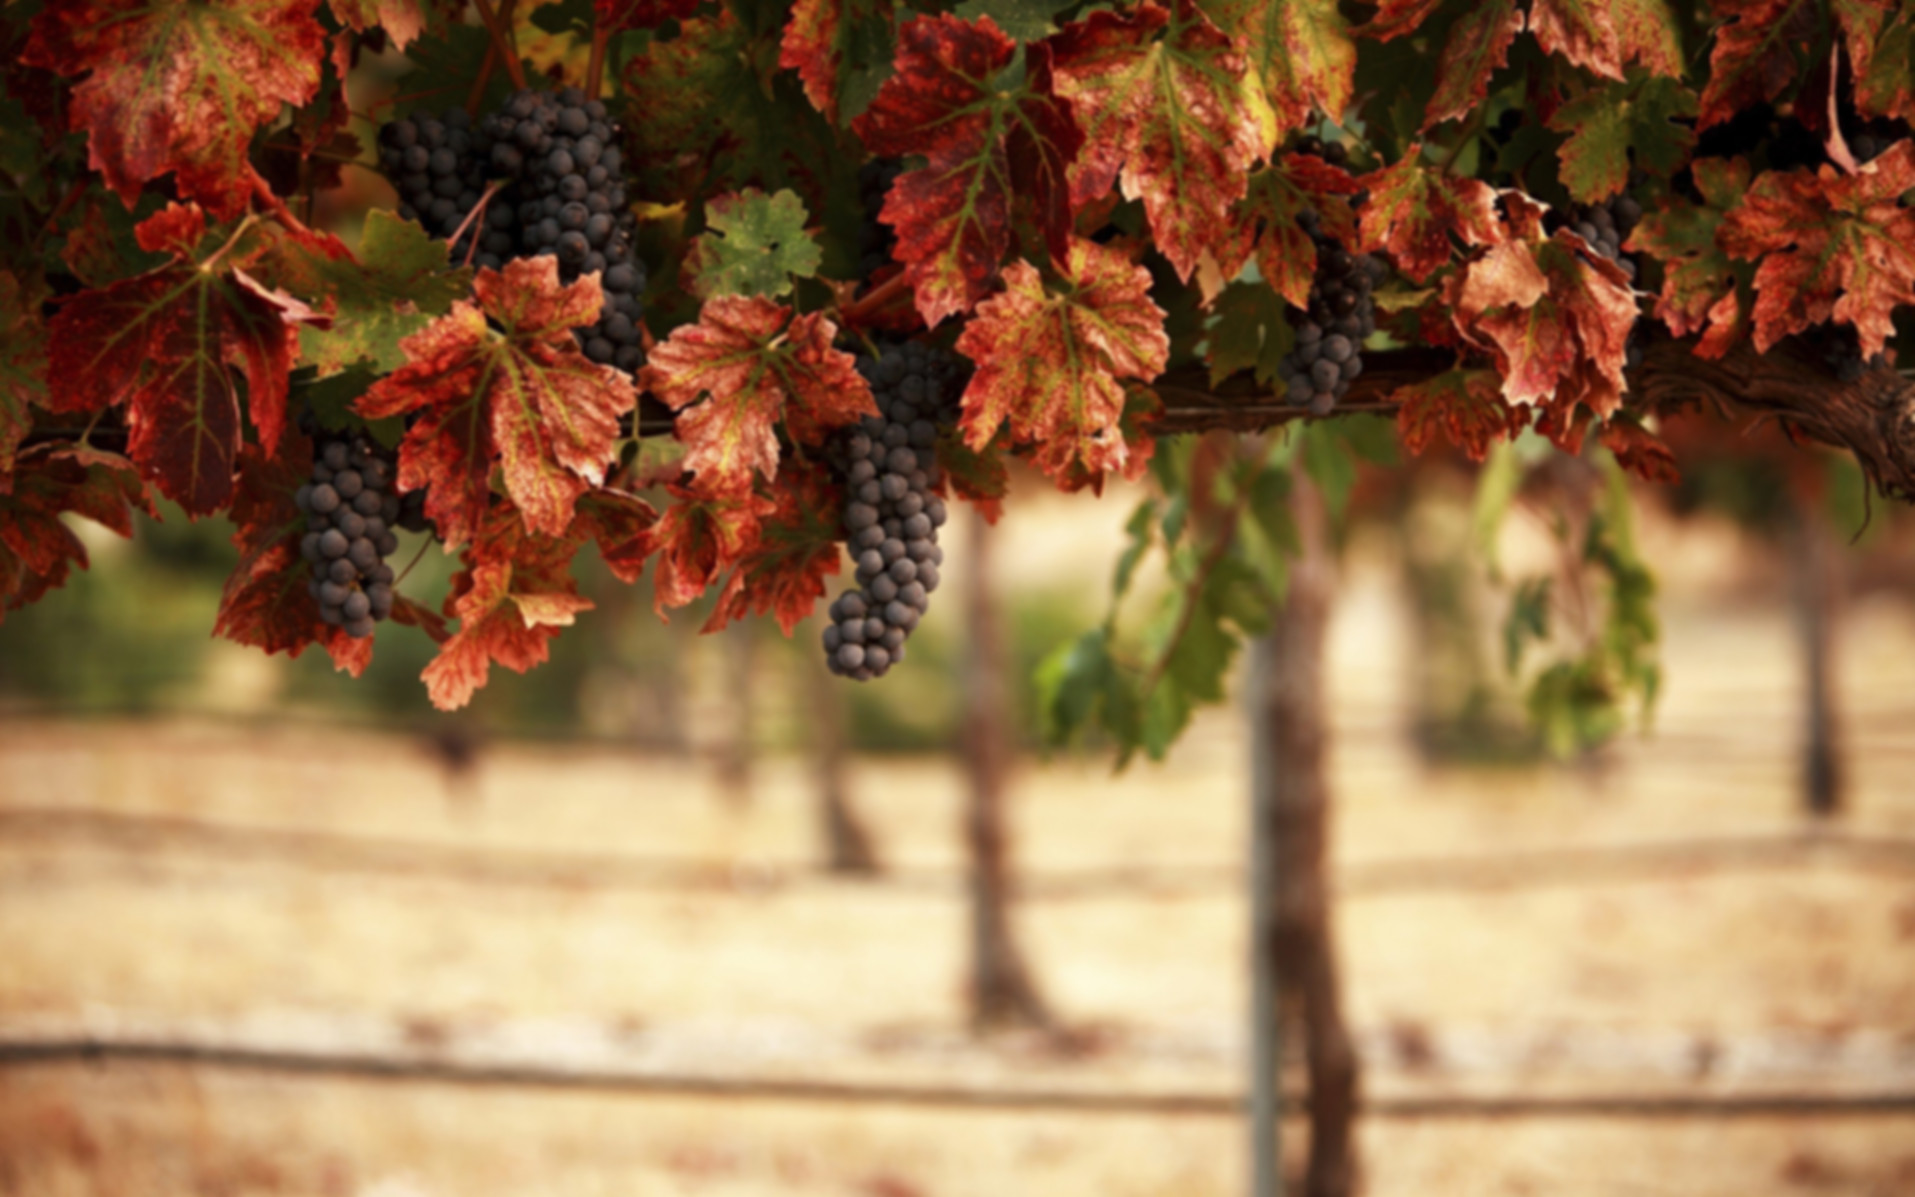 vineyard-grapes-autumn-2560x1600.jpg